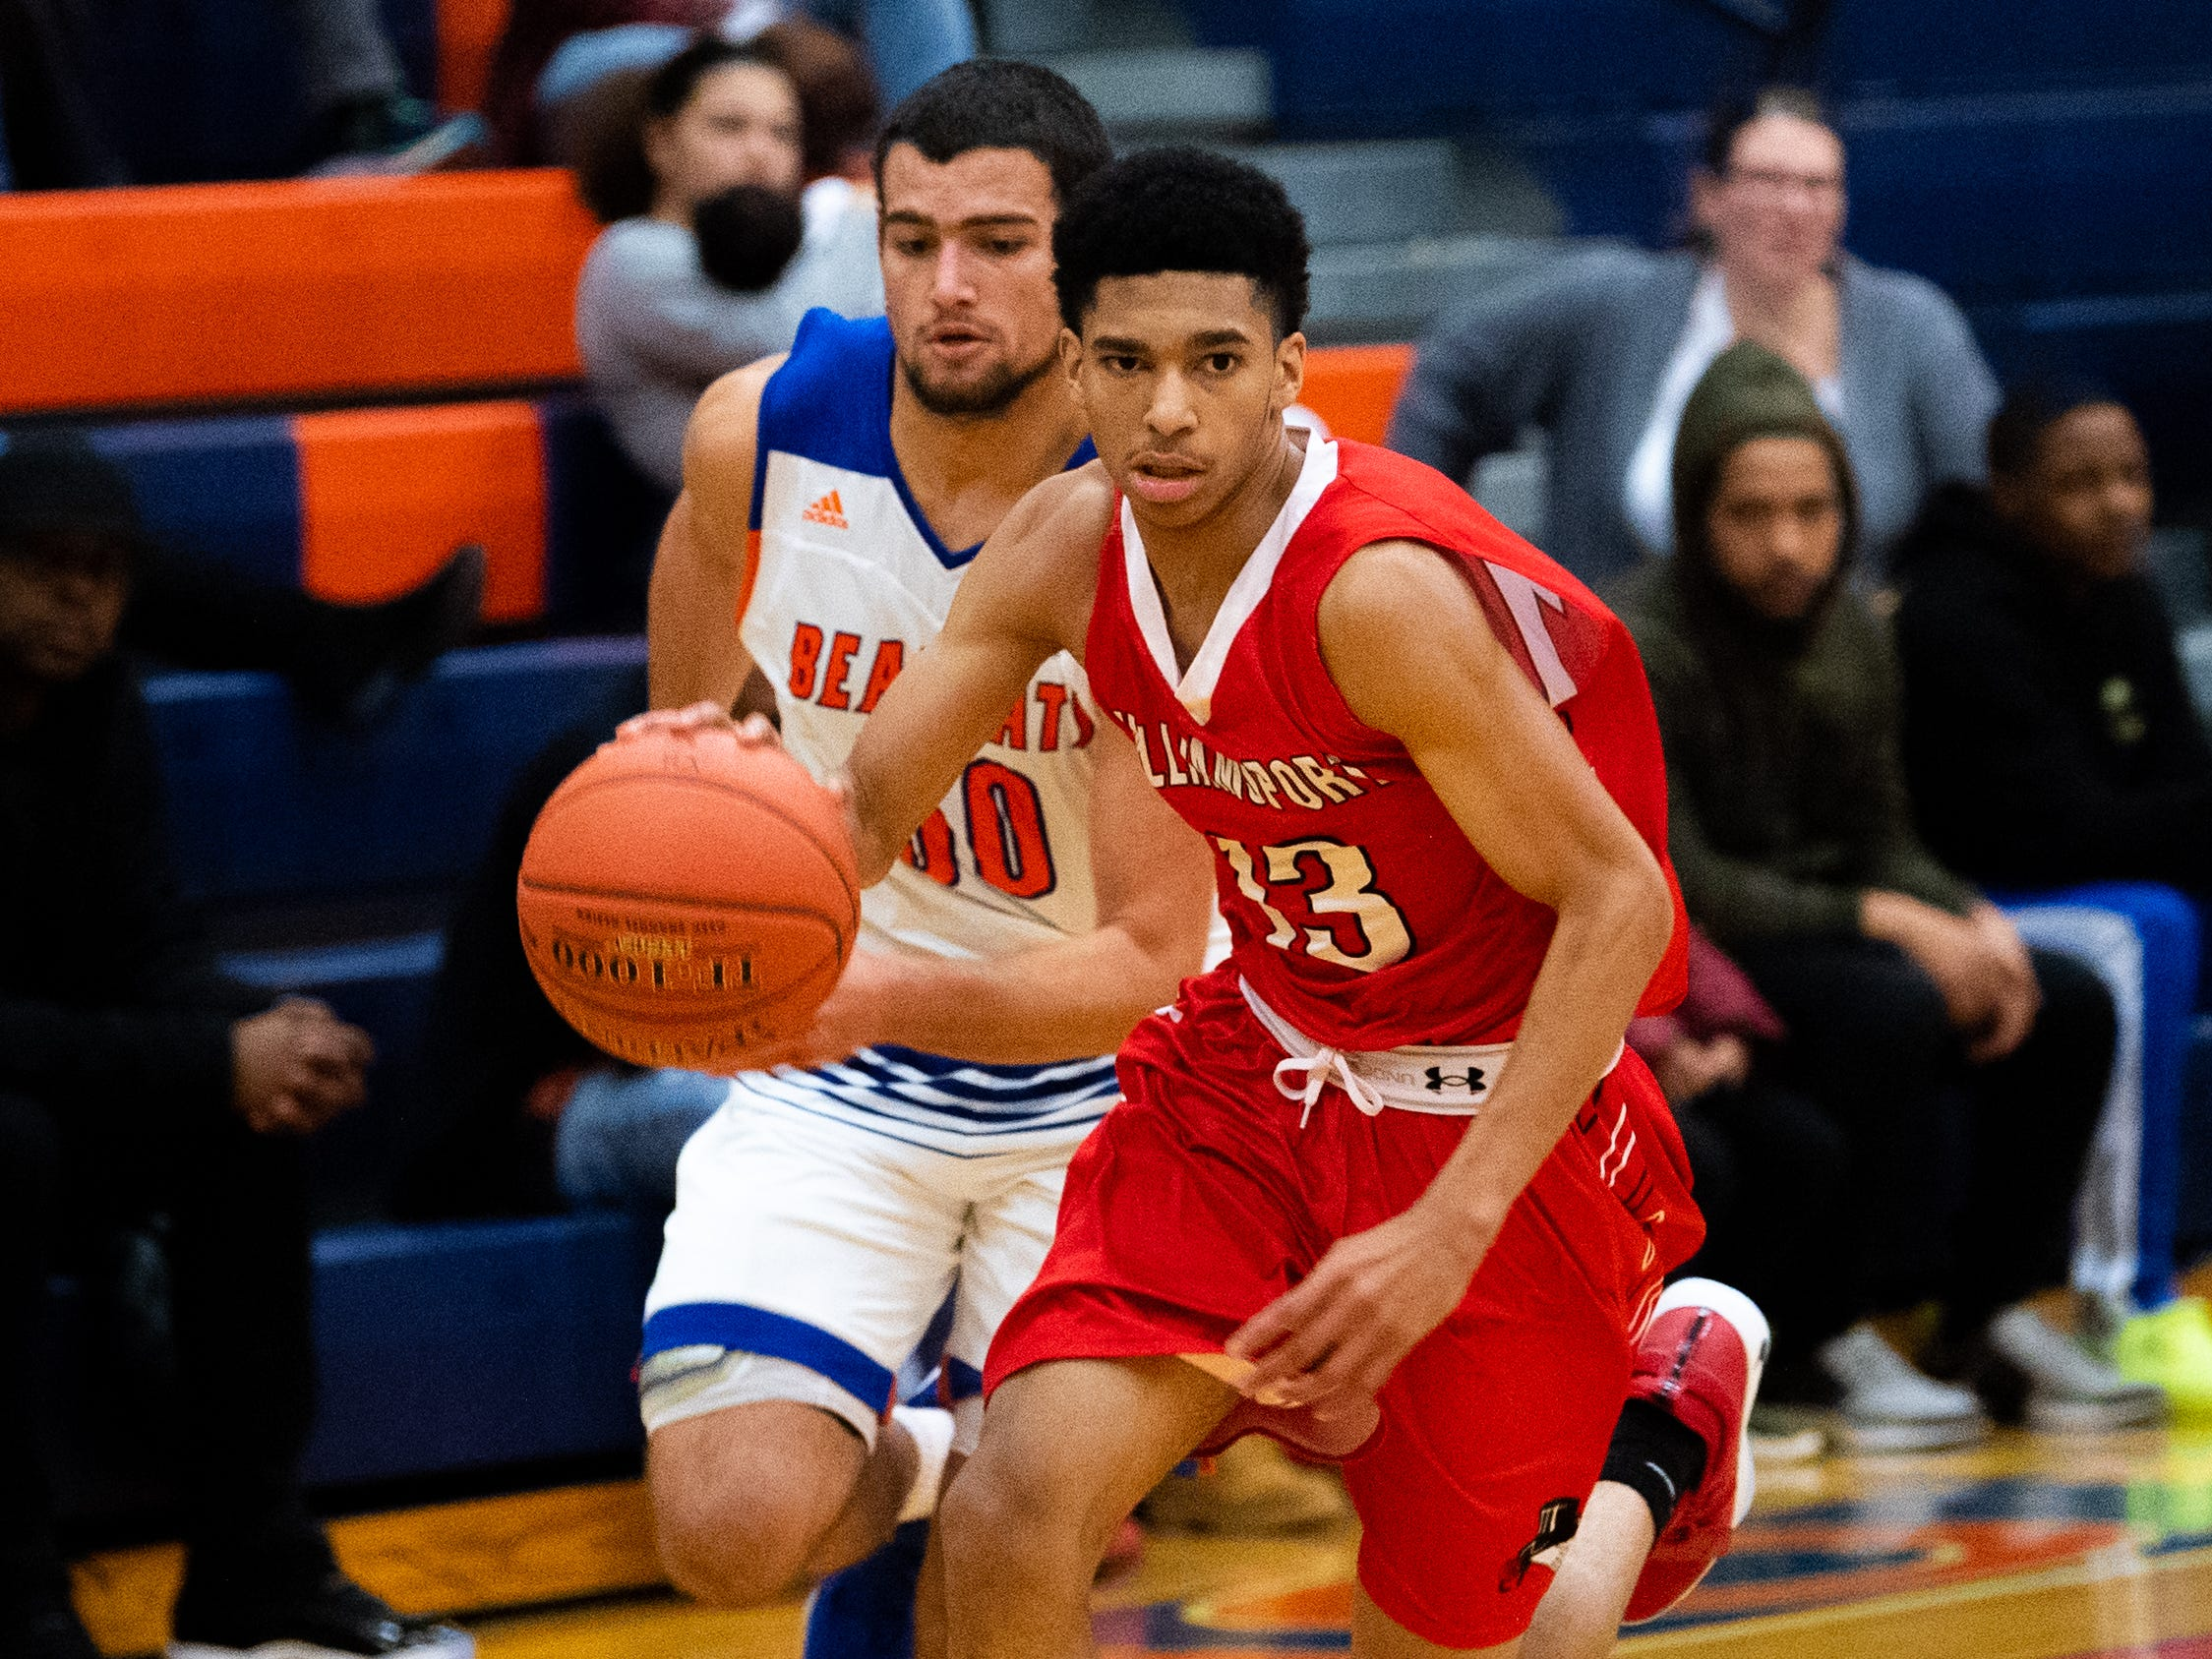 Ethan Williams (13) leads the fast break during the Tip-Off Tournament championship game between York High and Williamsport at York High, Saturday, December 8, 2018. The Bearcats defeated the Millionaires 74-47.